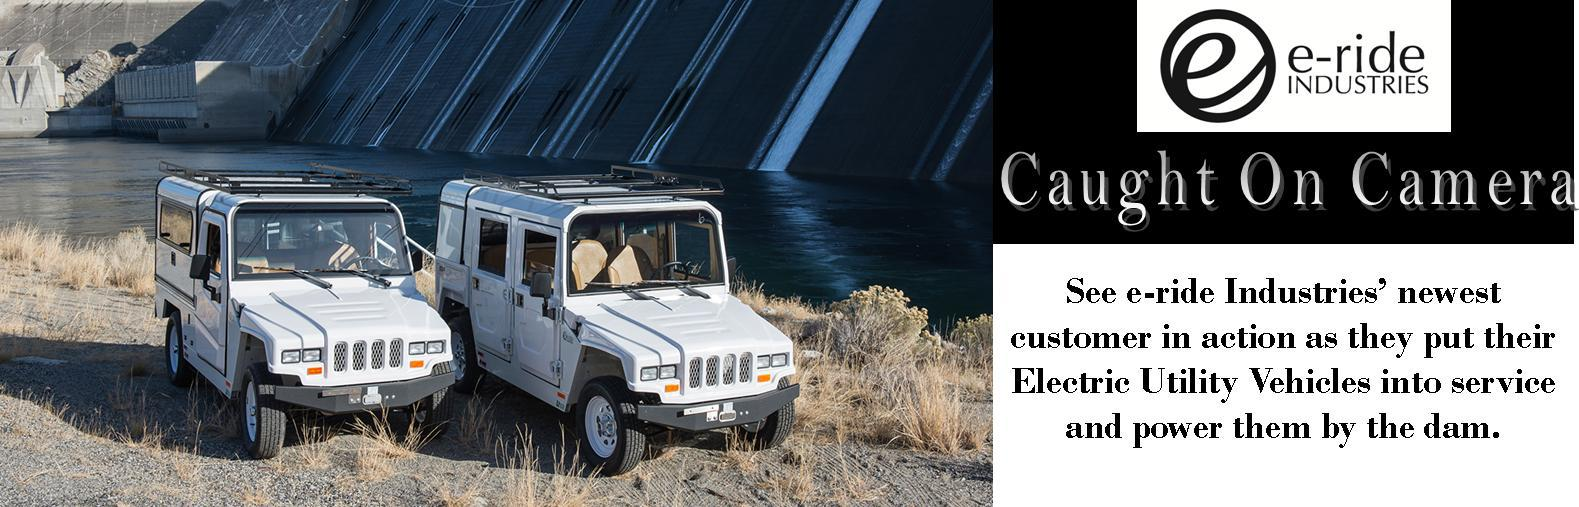 Electric Utility Vehicle, e-ride Industries, low speed vehicles, Electric Vehicles, Grand Coulee Dam, sustainabilty, fleet vehicles